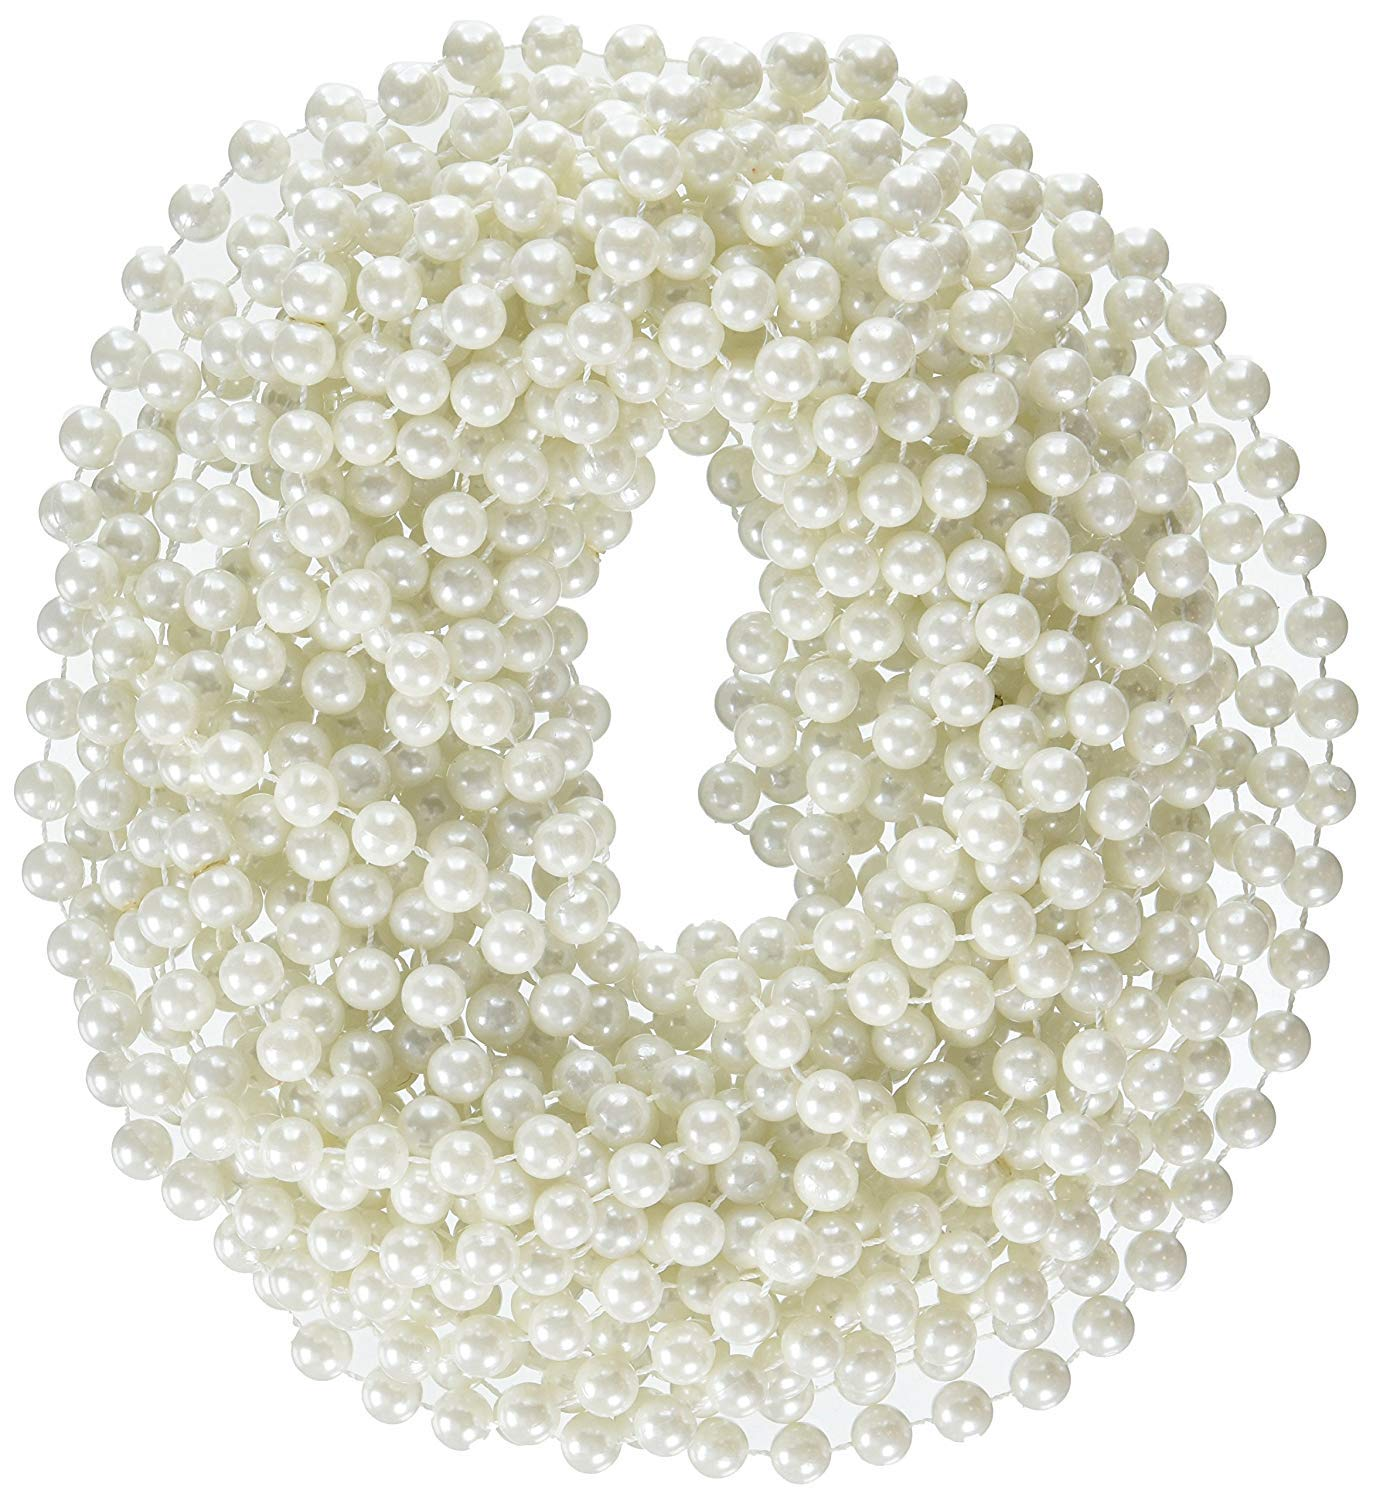 Rhode Island Novelty 48-Inch 12mm Faux Pearl Necklace | White | Pack of 12 by Rhode Island Novelty